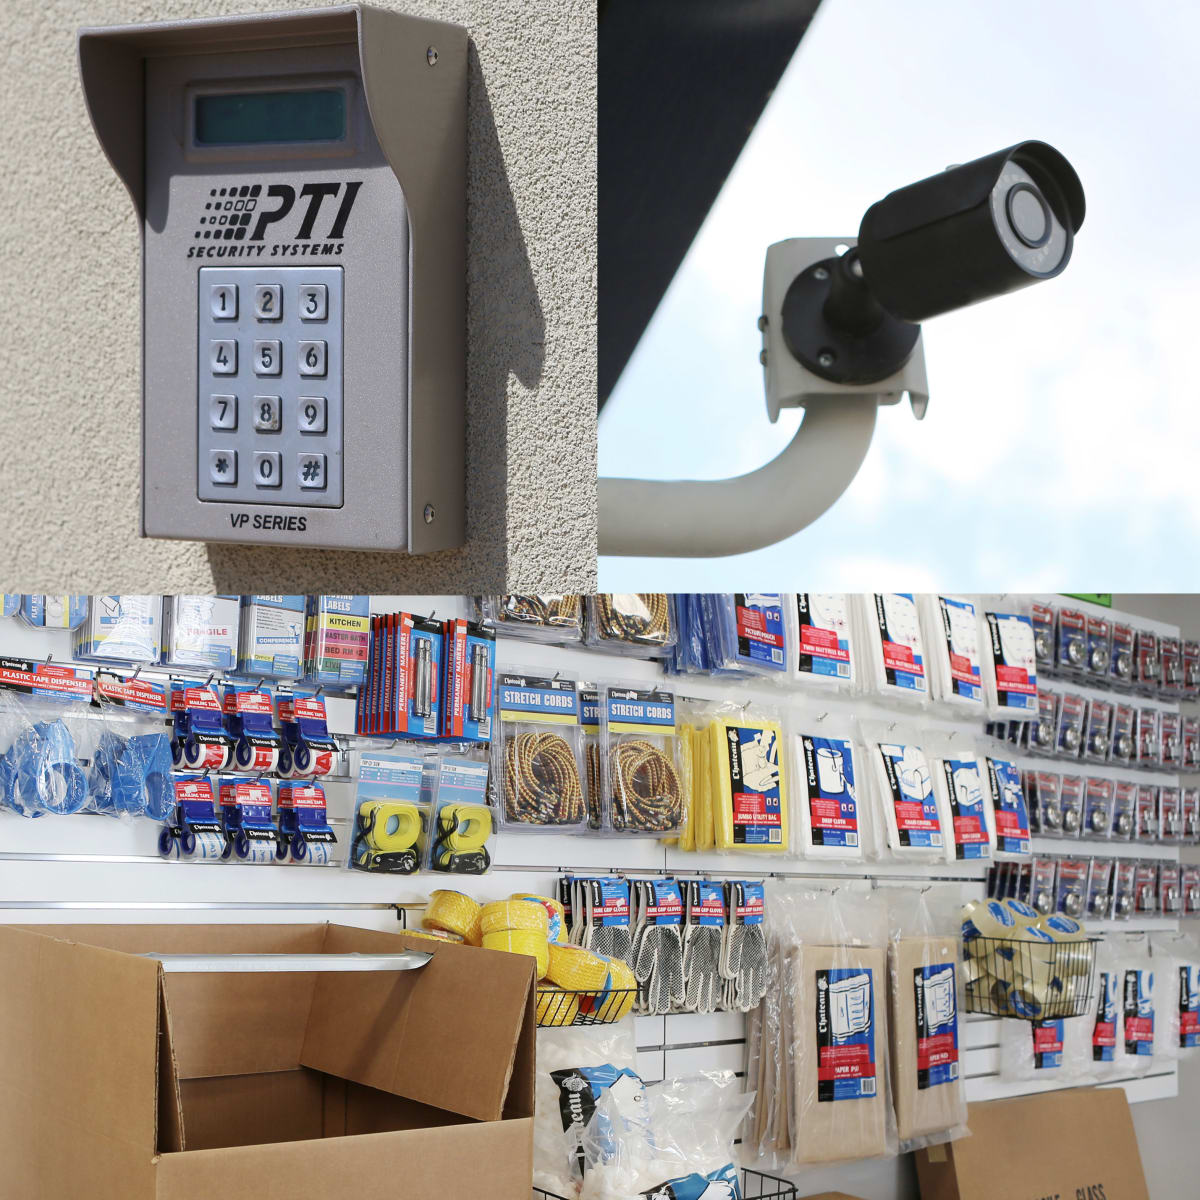 We provide 24 hour security monitoring and sell various moving and packing supplies at Midgard Self Storage in Gainesville, Georgia